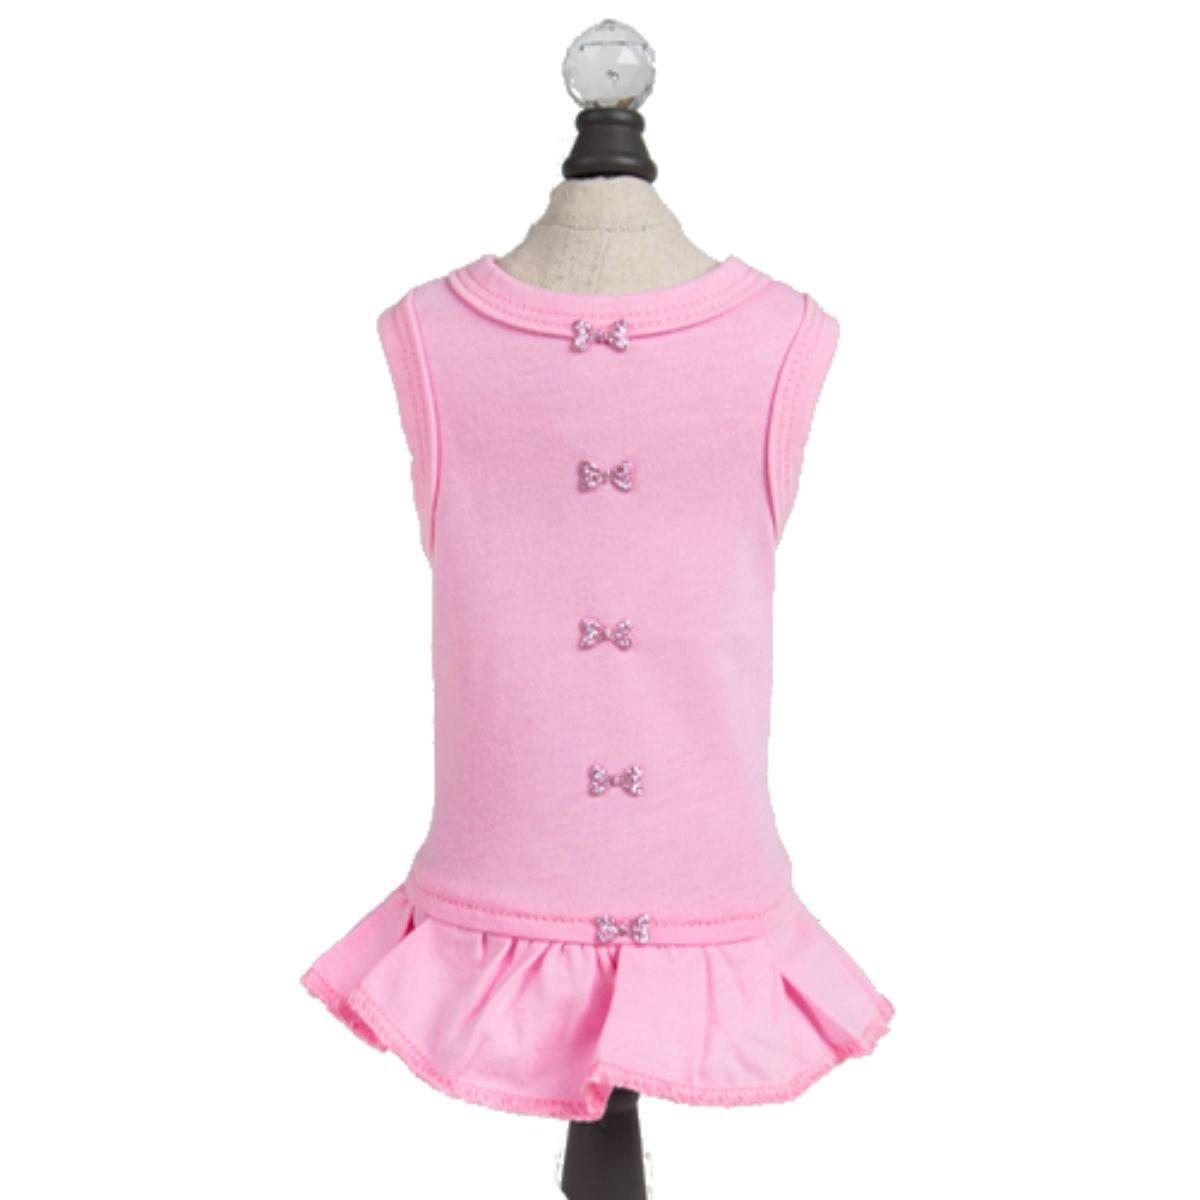 Hello Doggie Candy Dog Dress - Pink